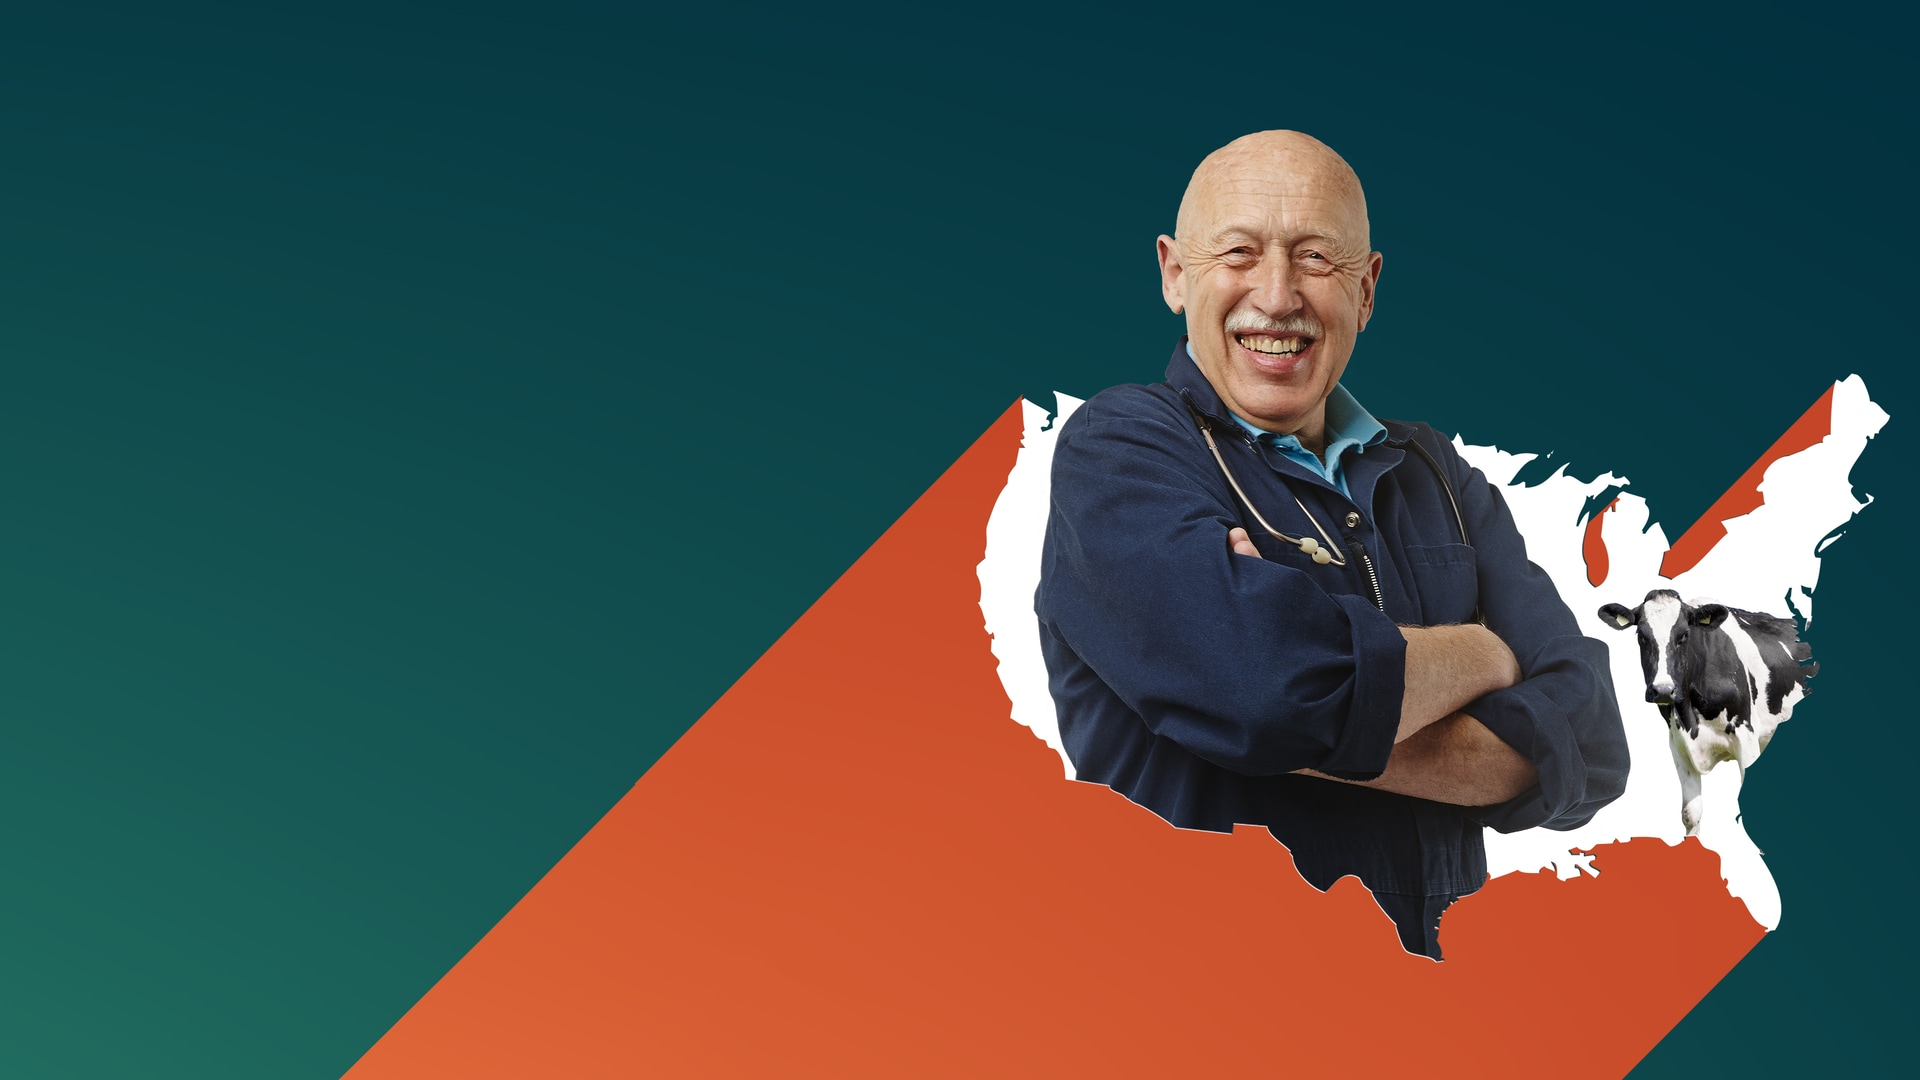 Watch Full Episodes of The Incredible Dr. Pol on FOX